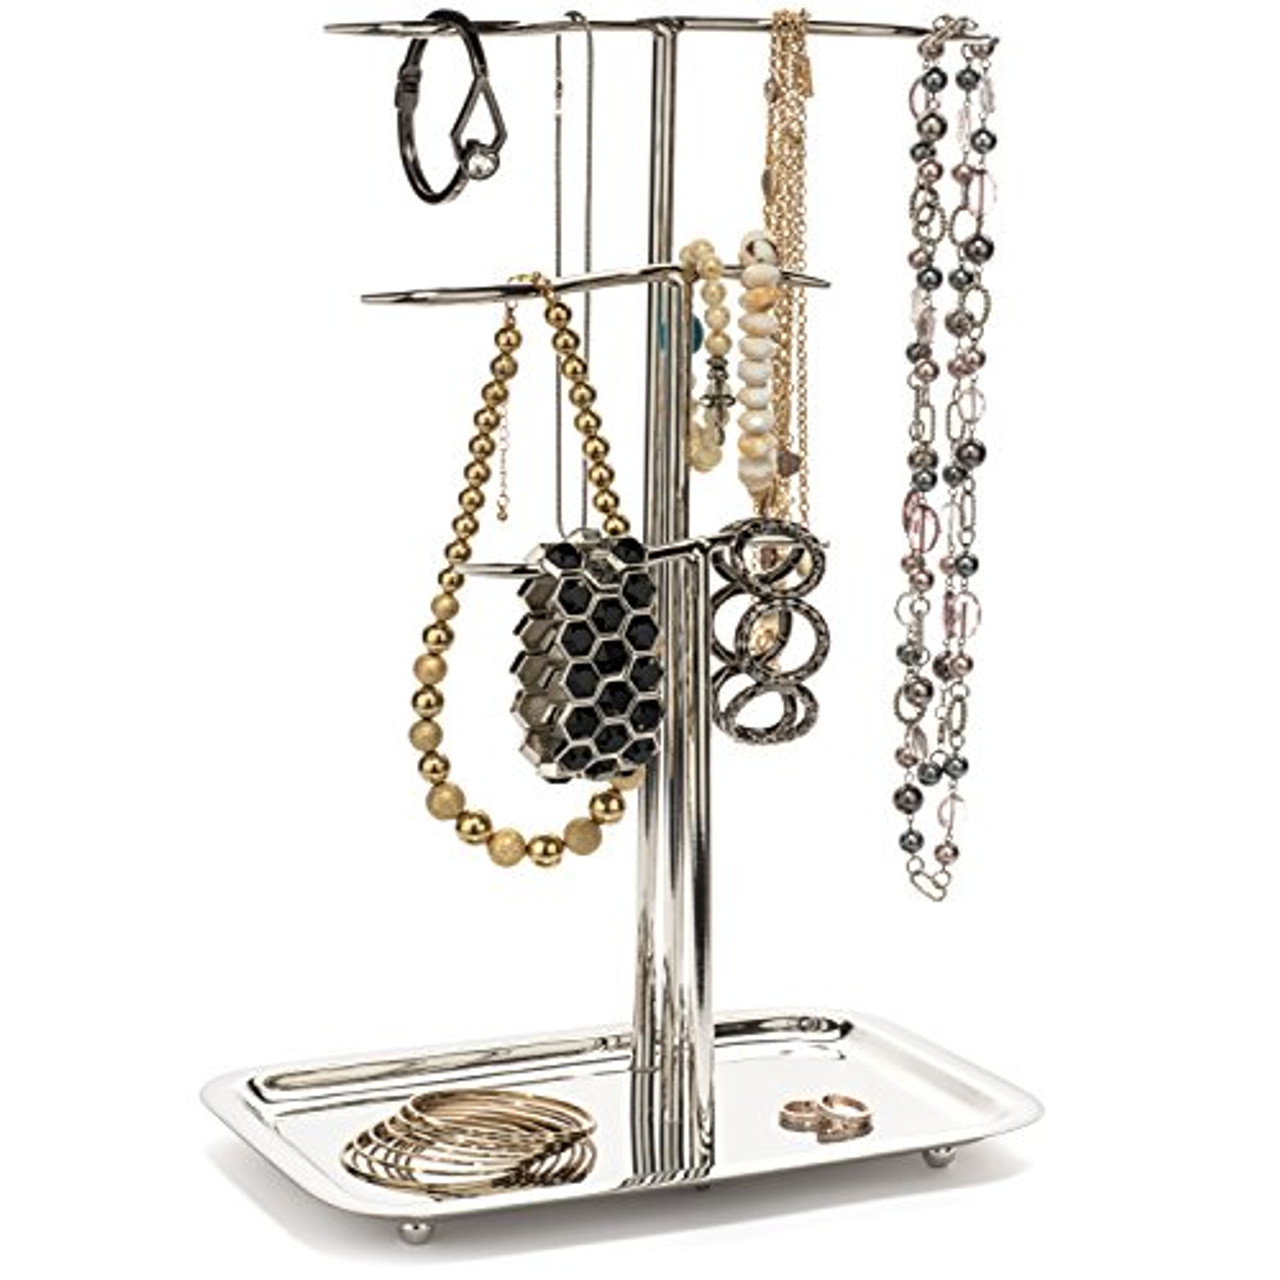 043ccddb2 OVERSTOCK DEALS NEW IN THE BOX H Potter Jewelry Tree Organizer & 3 Tier  Chrome Display Stand with Tray – Hanging Storage Holder for Necklaces  Bracelets ...